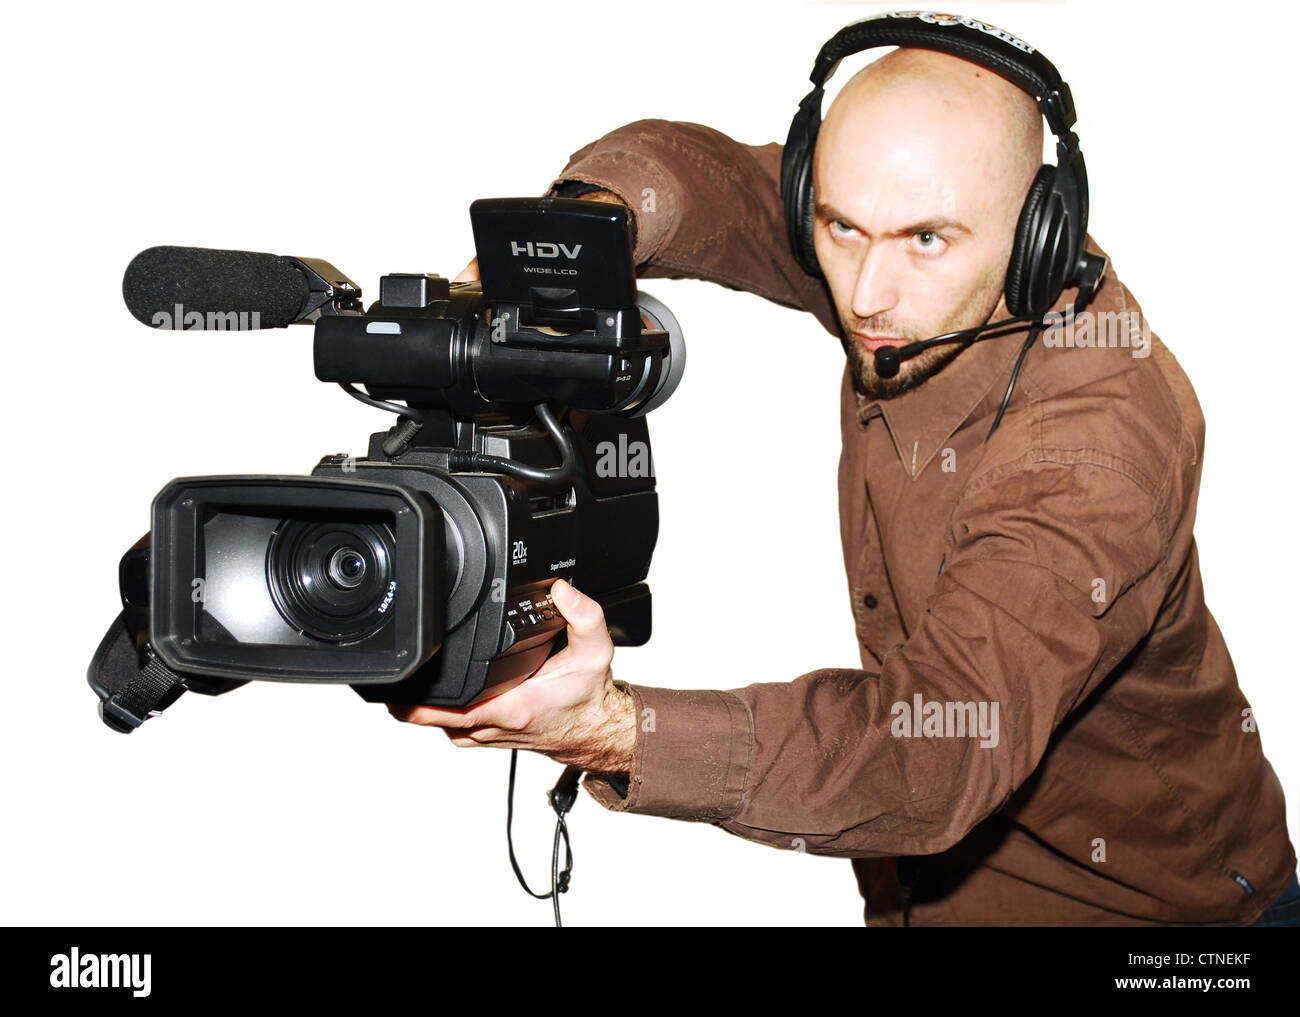 image with a television cameraman working with camera - Stock Image